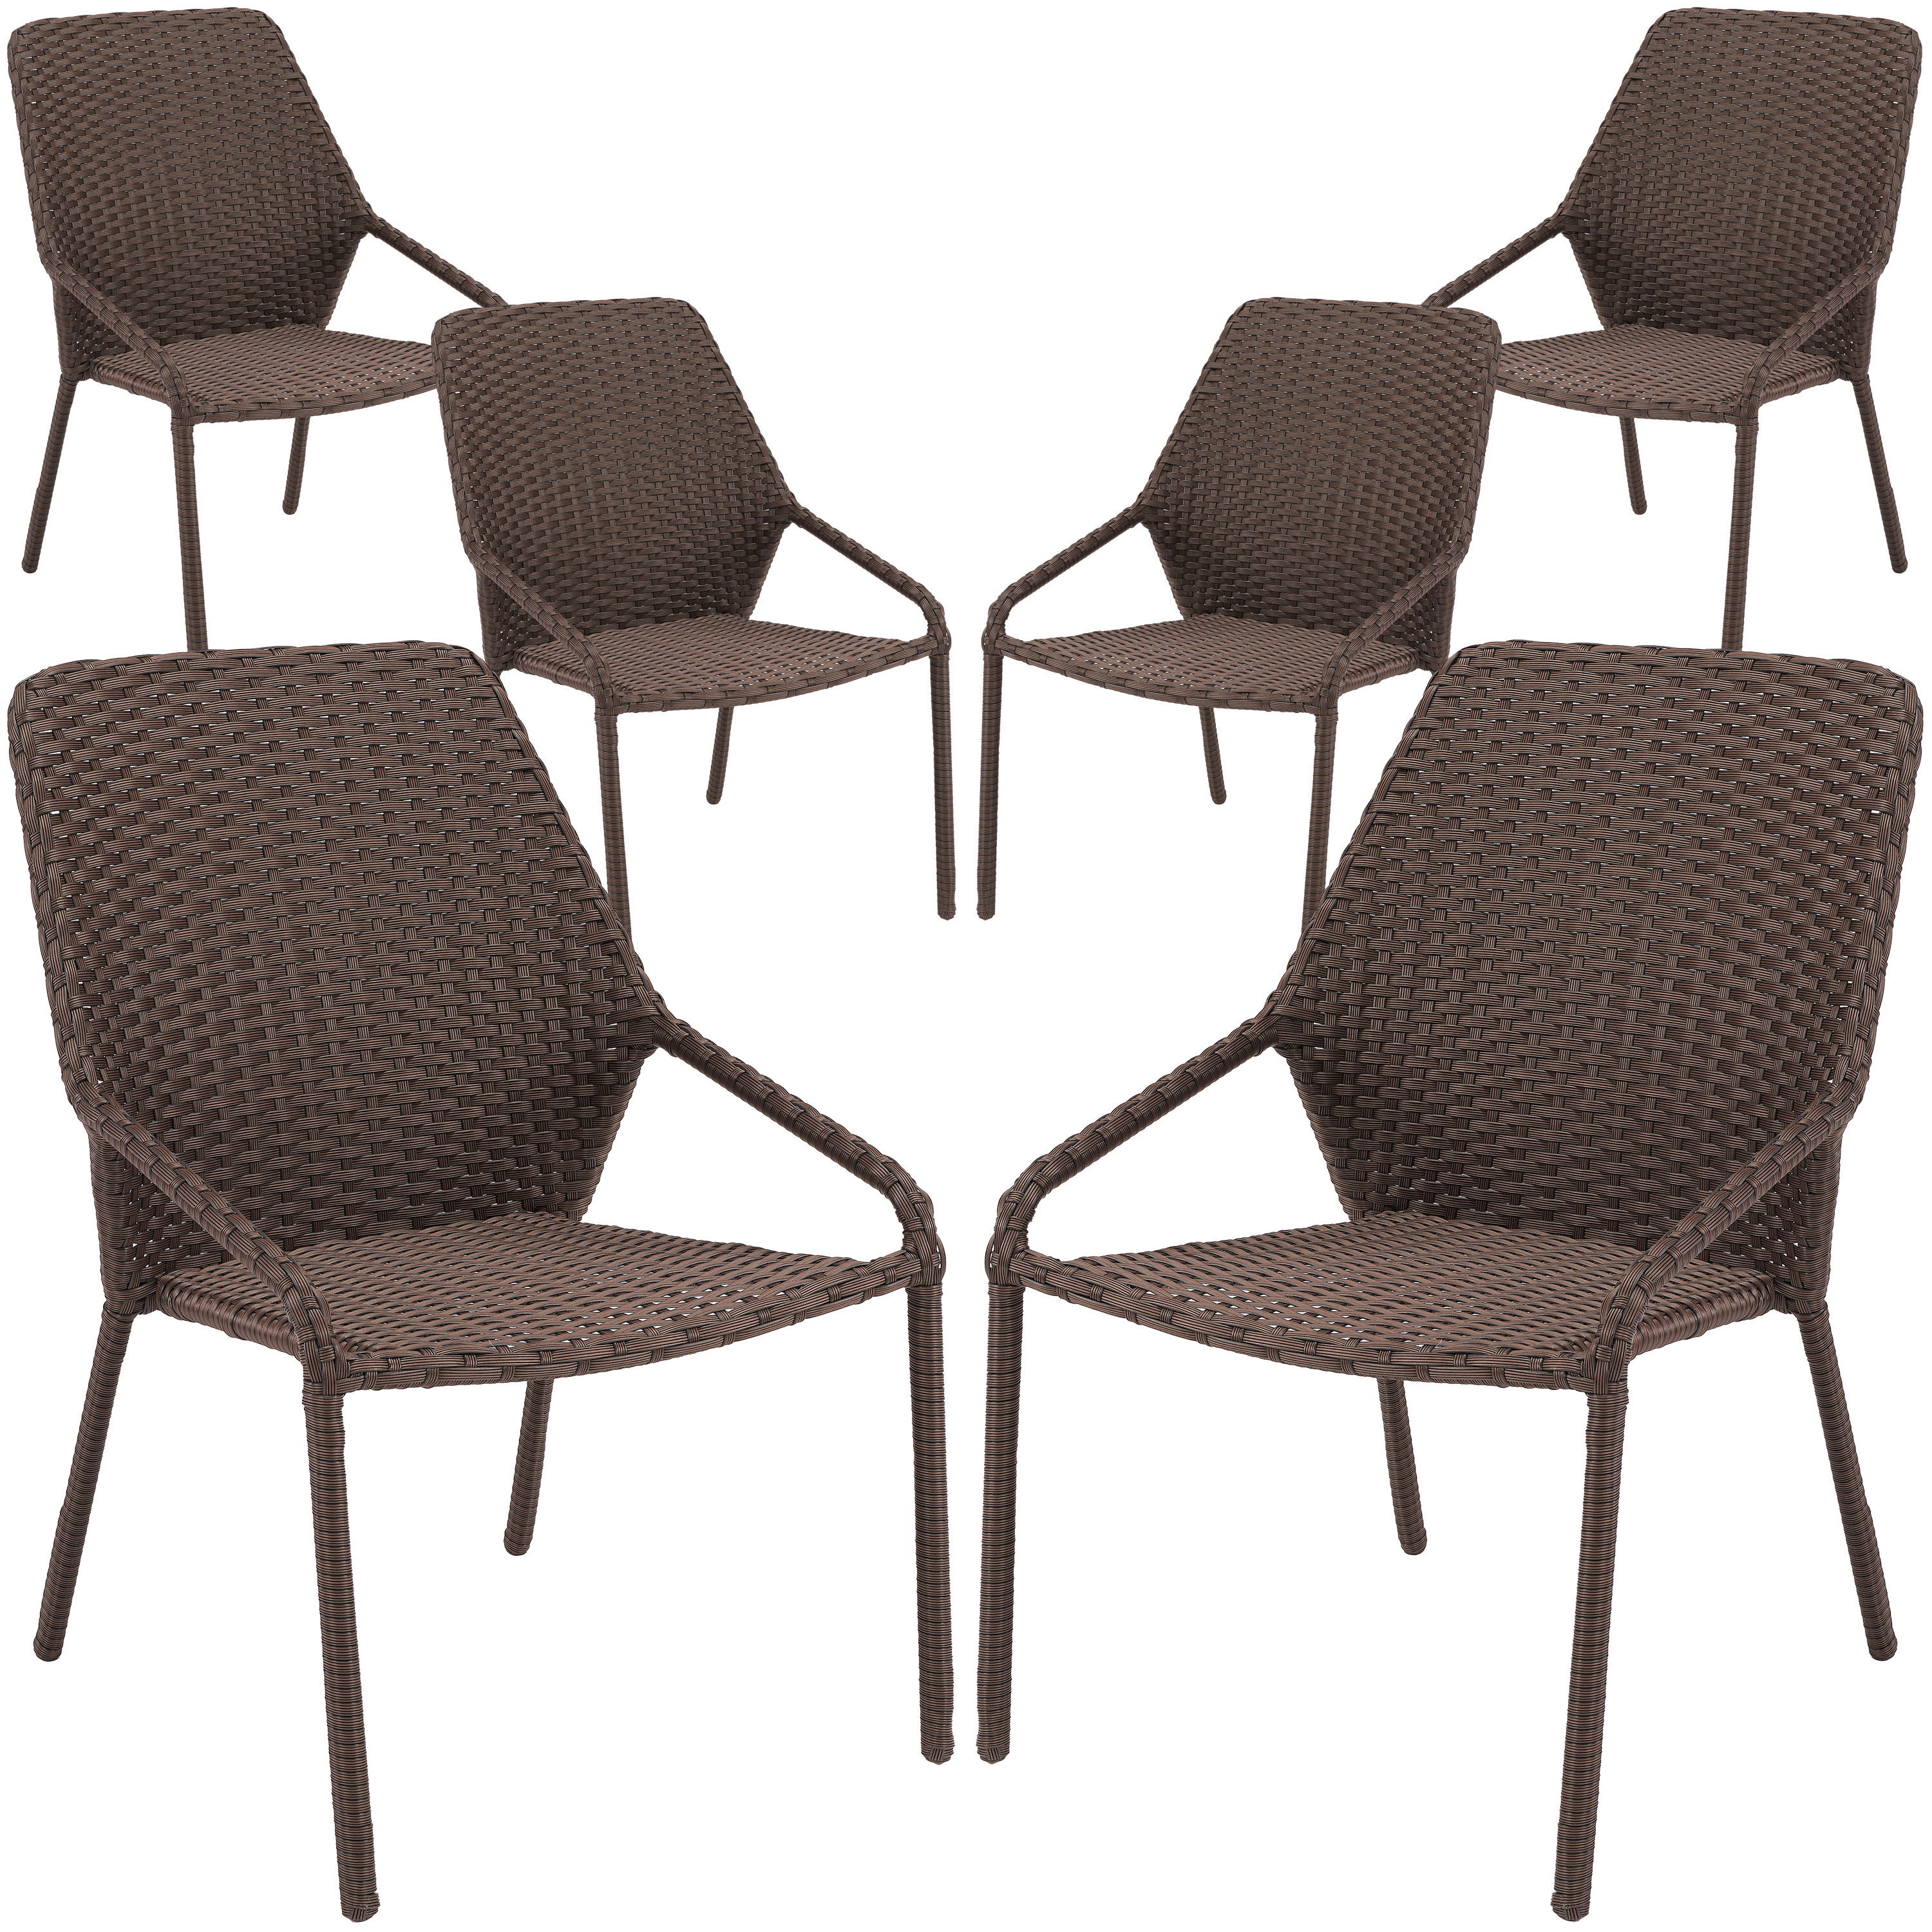 mainstays danella outdoor patio wicker dining chairs set of 6